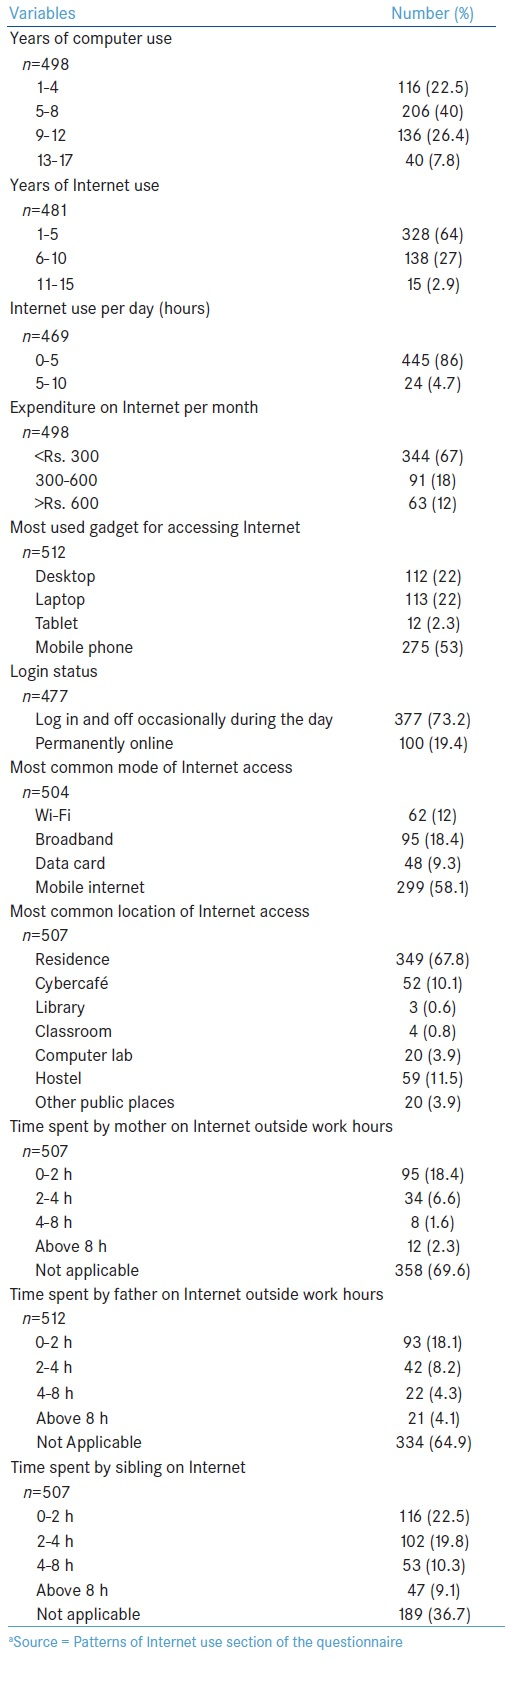 Table 2: Patterns of internet use<sup>a</sup>